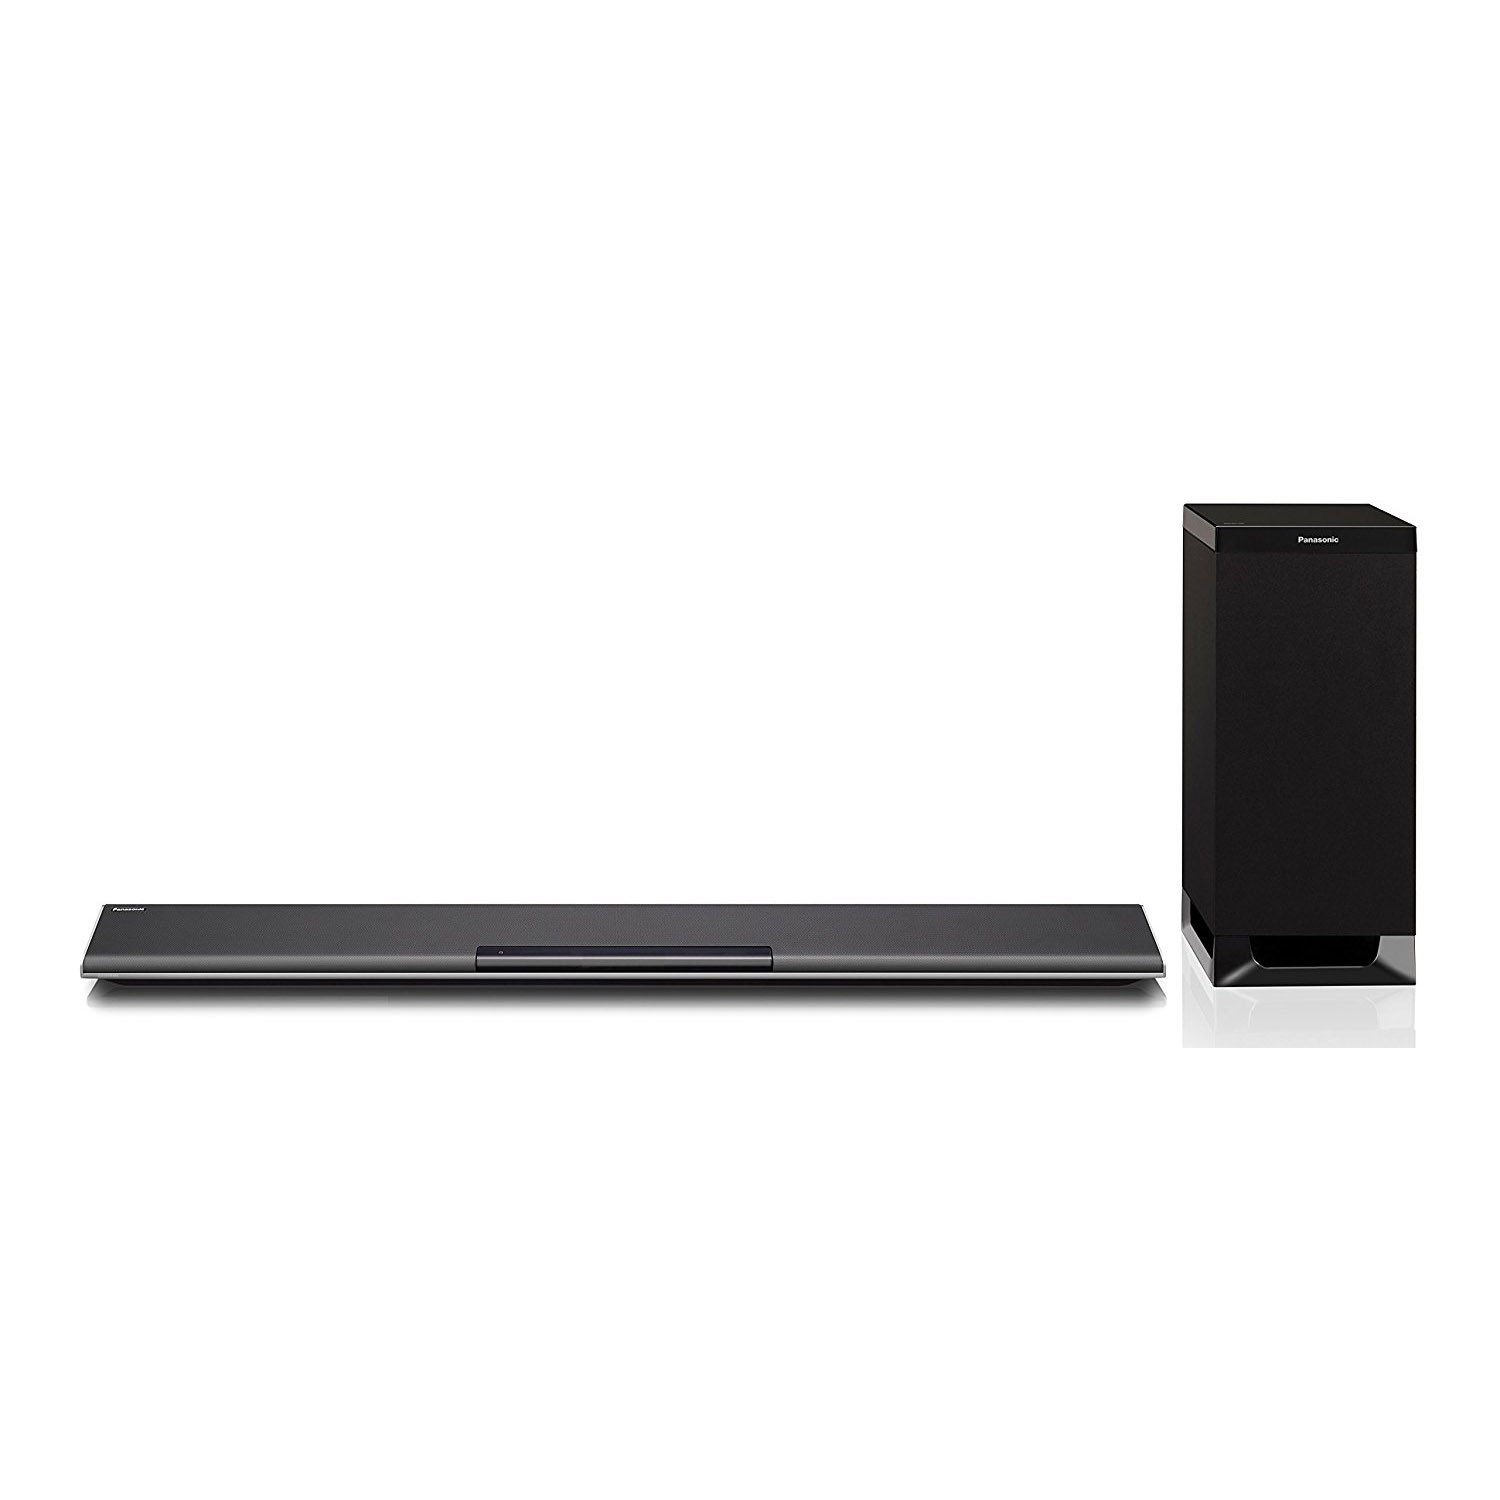 panasonic sc htb485e soundbar with wireless subwoofer 250w. Black Bedroom Furniture Sets. Home Design Ideas